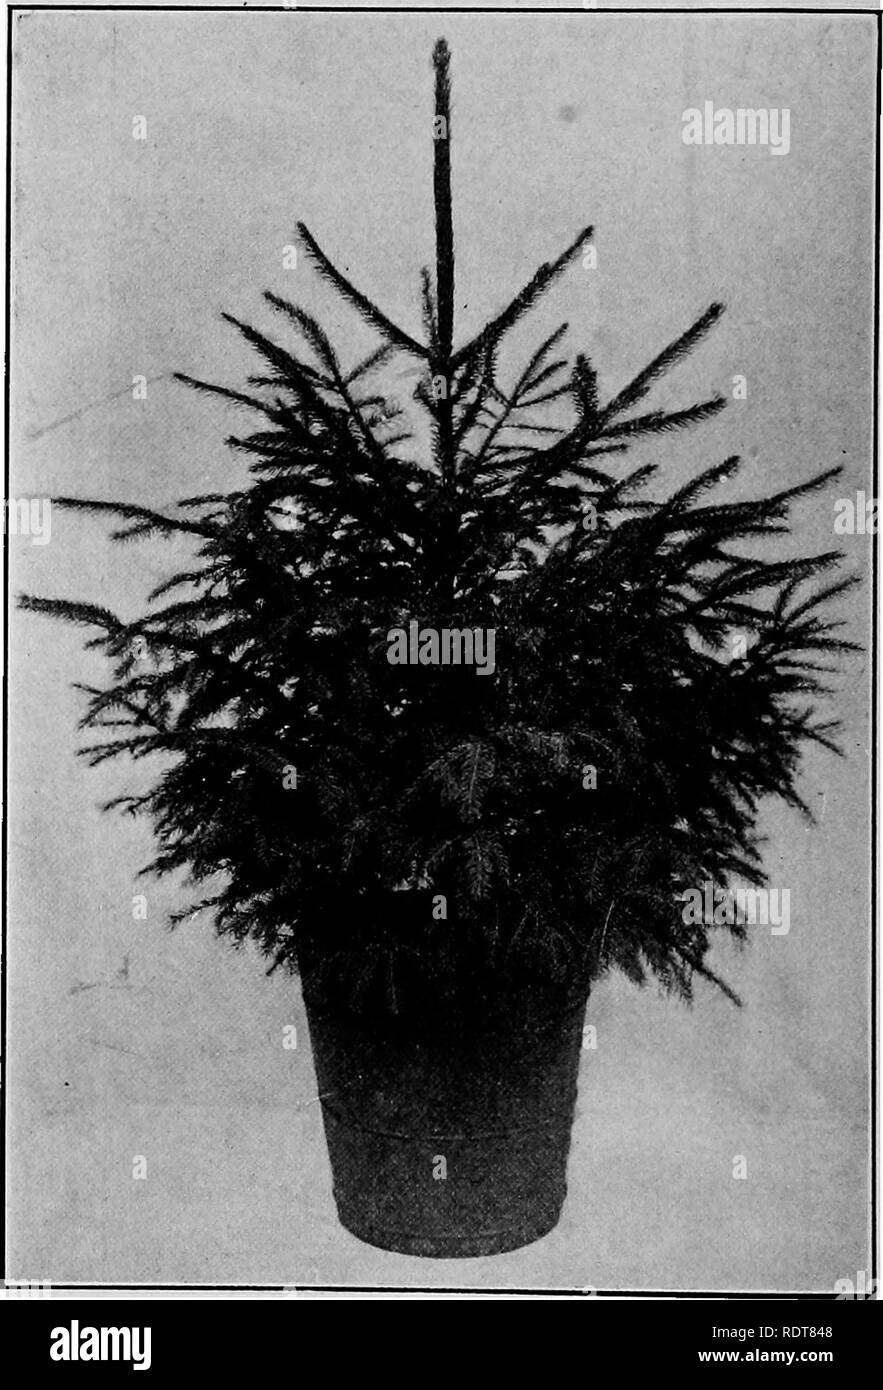 . Milady's house plants, the complete instructor and guide to success with flowers and plants in the home, including a remarkable chapter on the ideal sun parlor. House plants. 130 Milady's House Plants. This Norway Spruce has been growing in this tub one year, is well rooted, and in nice condition to withstand the Winter out of doors (see page 02). Please note that these images are extracted from scanned page images that may have been digitally enhanced for readability - coloration and appearance of these illustrations may not perfectly resemble the original work.. Palmer, Frederick E. New Yo - Stock Image